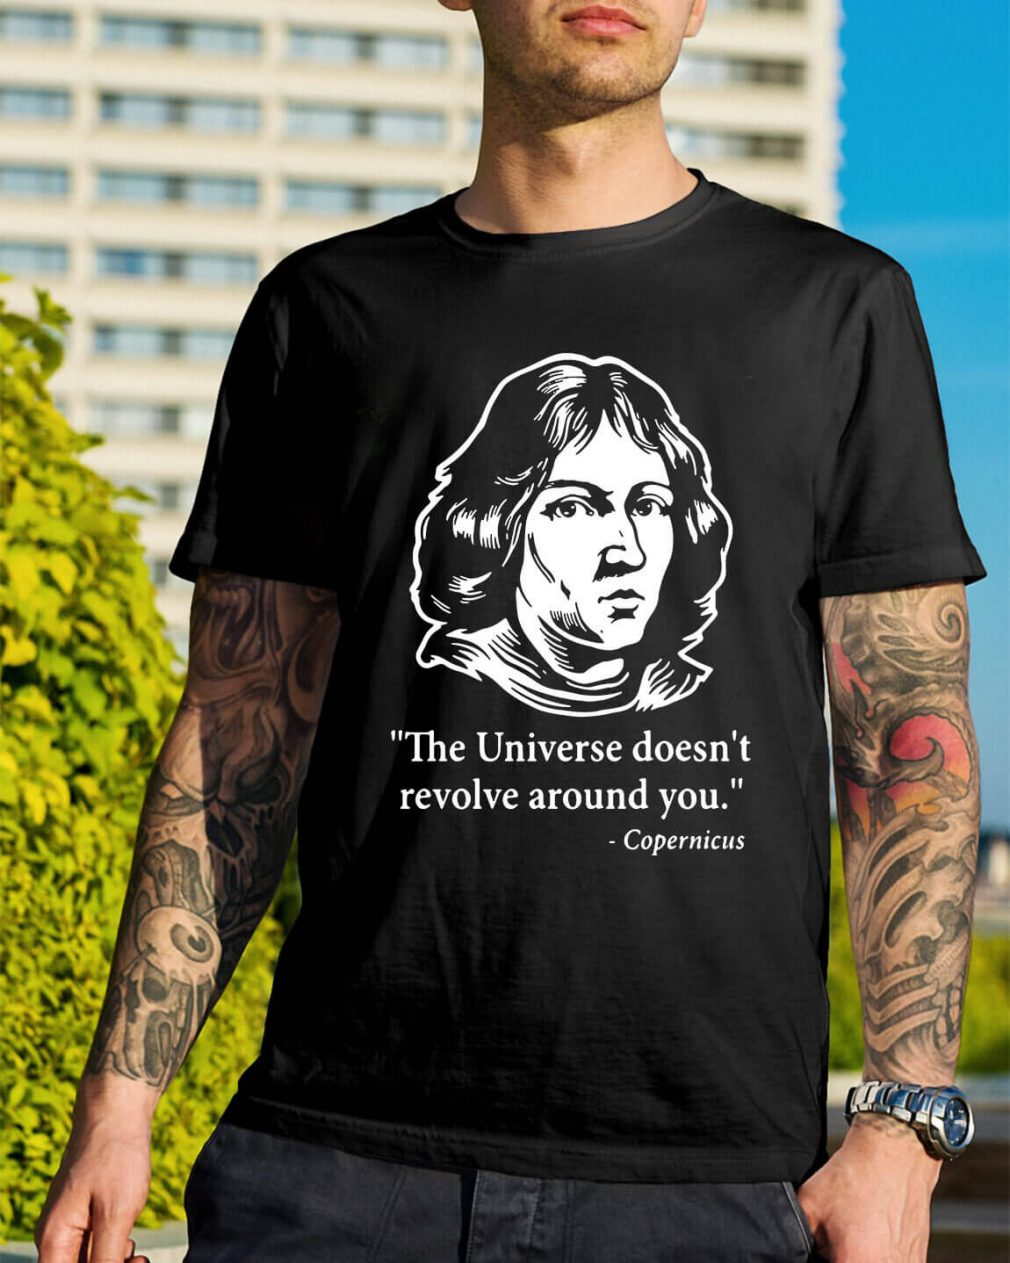 Copernicus - The Universe doesn't revolve around you shirt